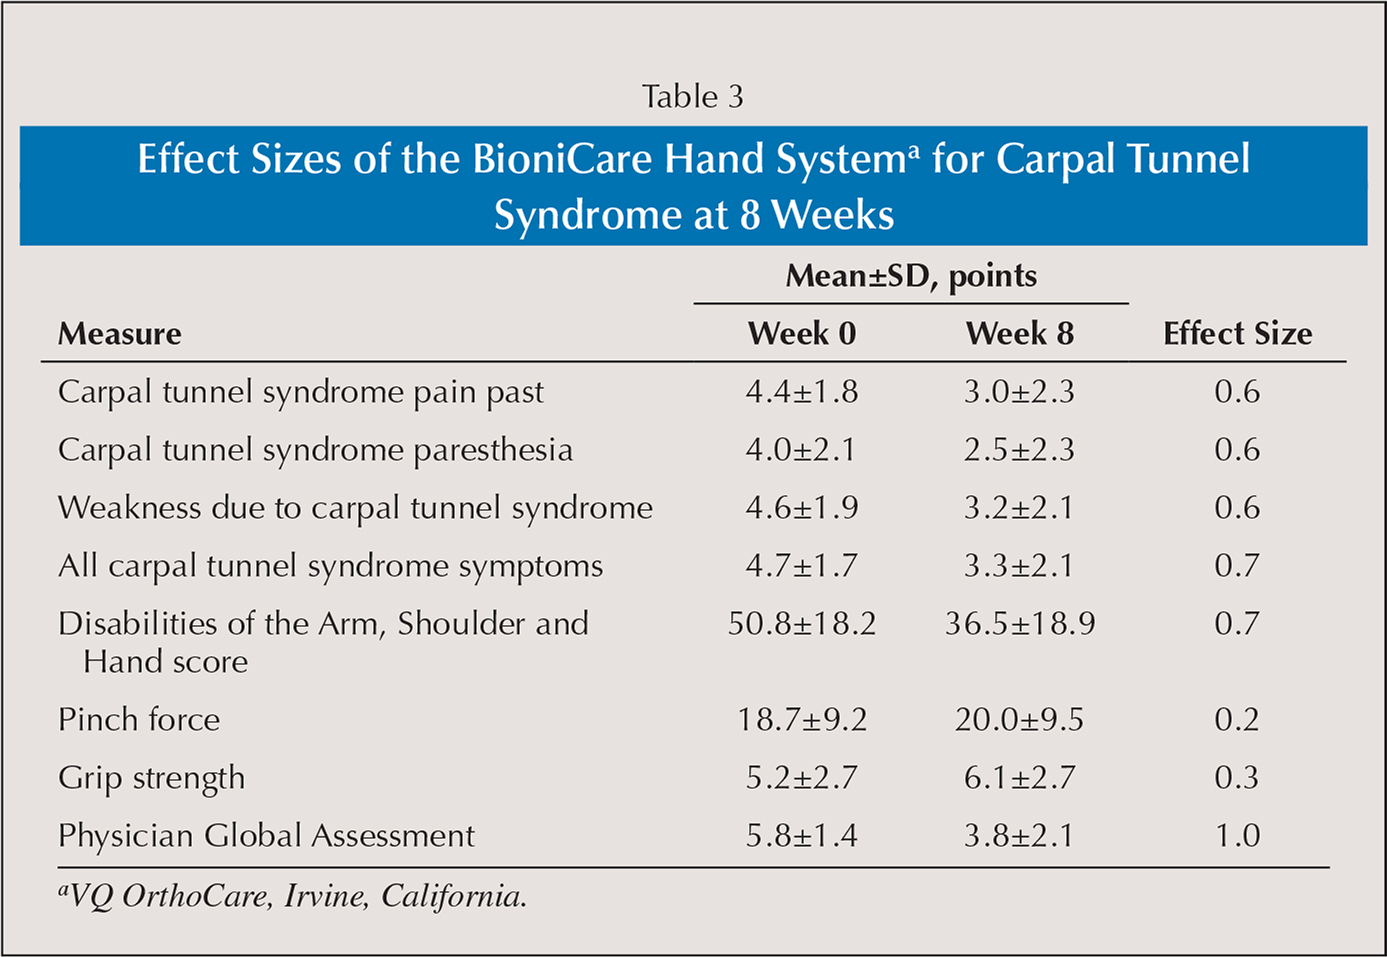 Effect Sizes of the BioniCare Hand Systema for Carpal Tunnel Syndrome at 8 Weeks